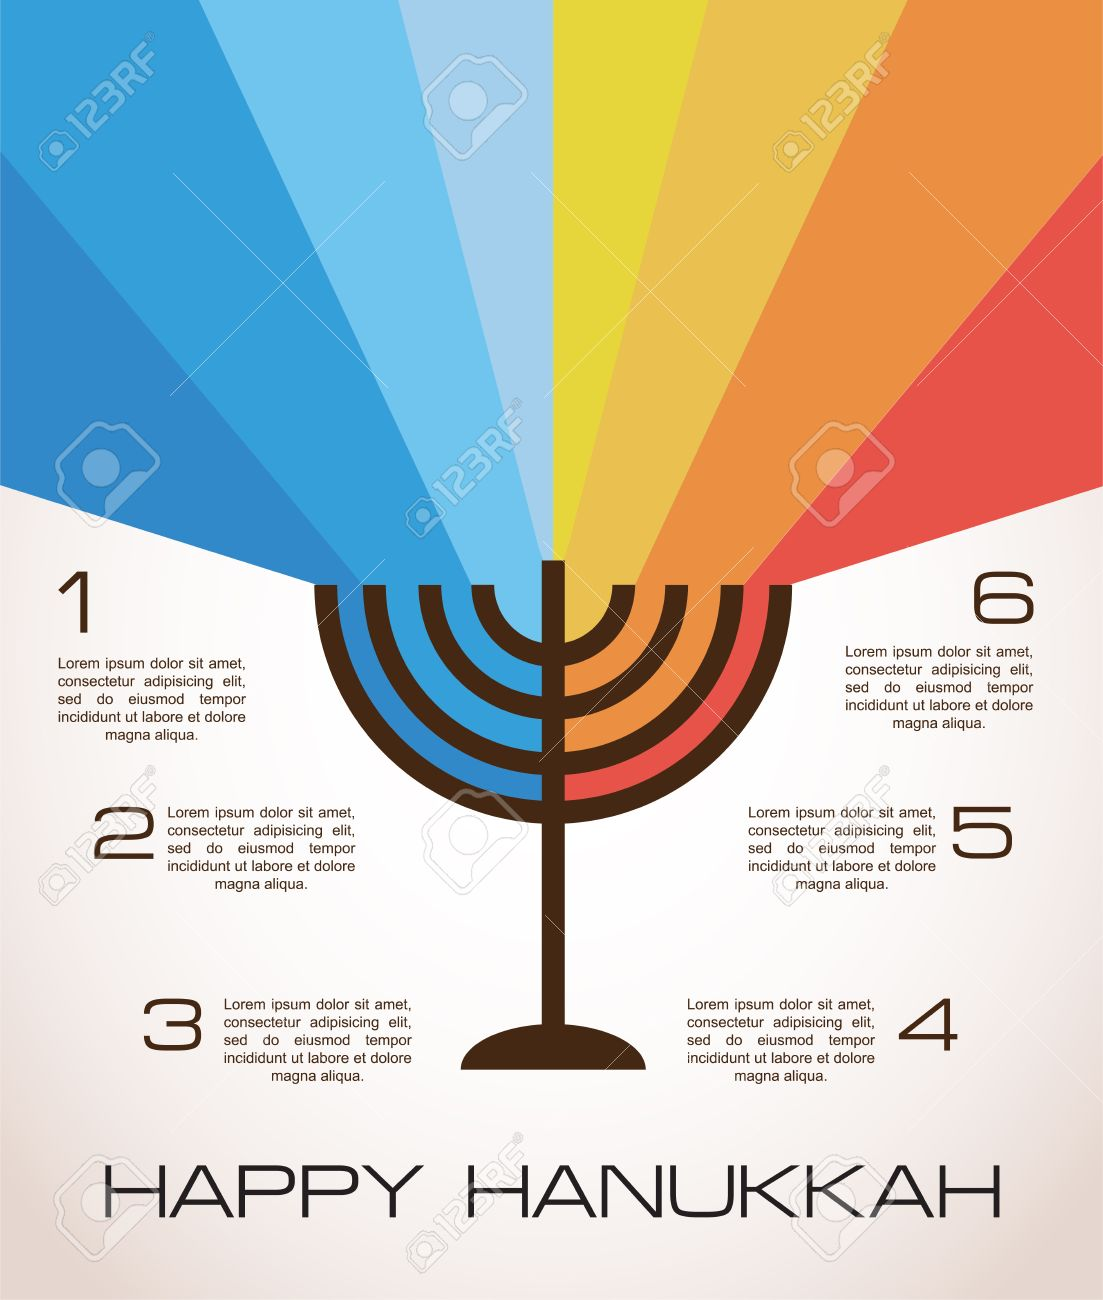 hanukkah infographics hanukkah menorah with rainbow lights royalty rh 123rf com Hanukkah Menorah Menorah Clip Art